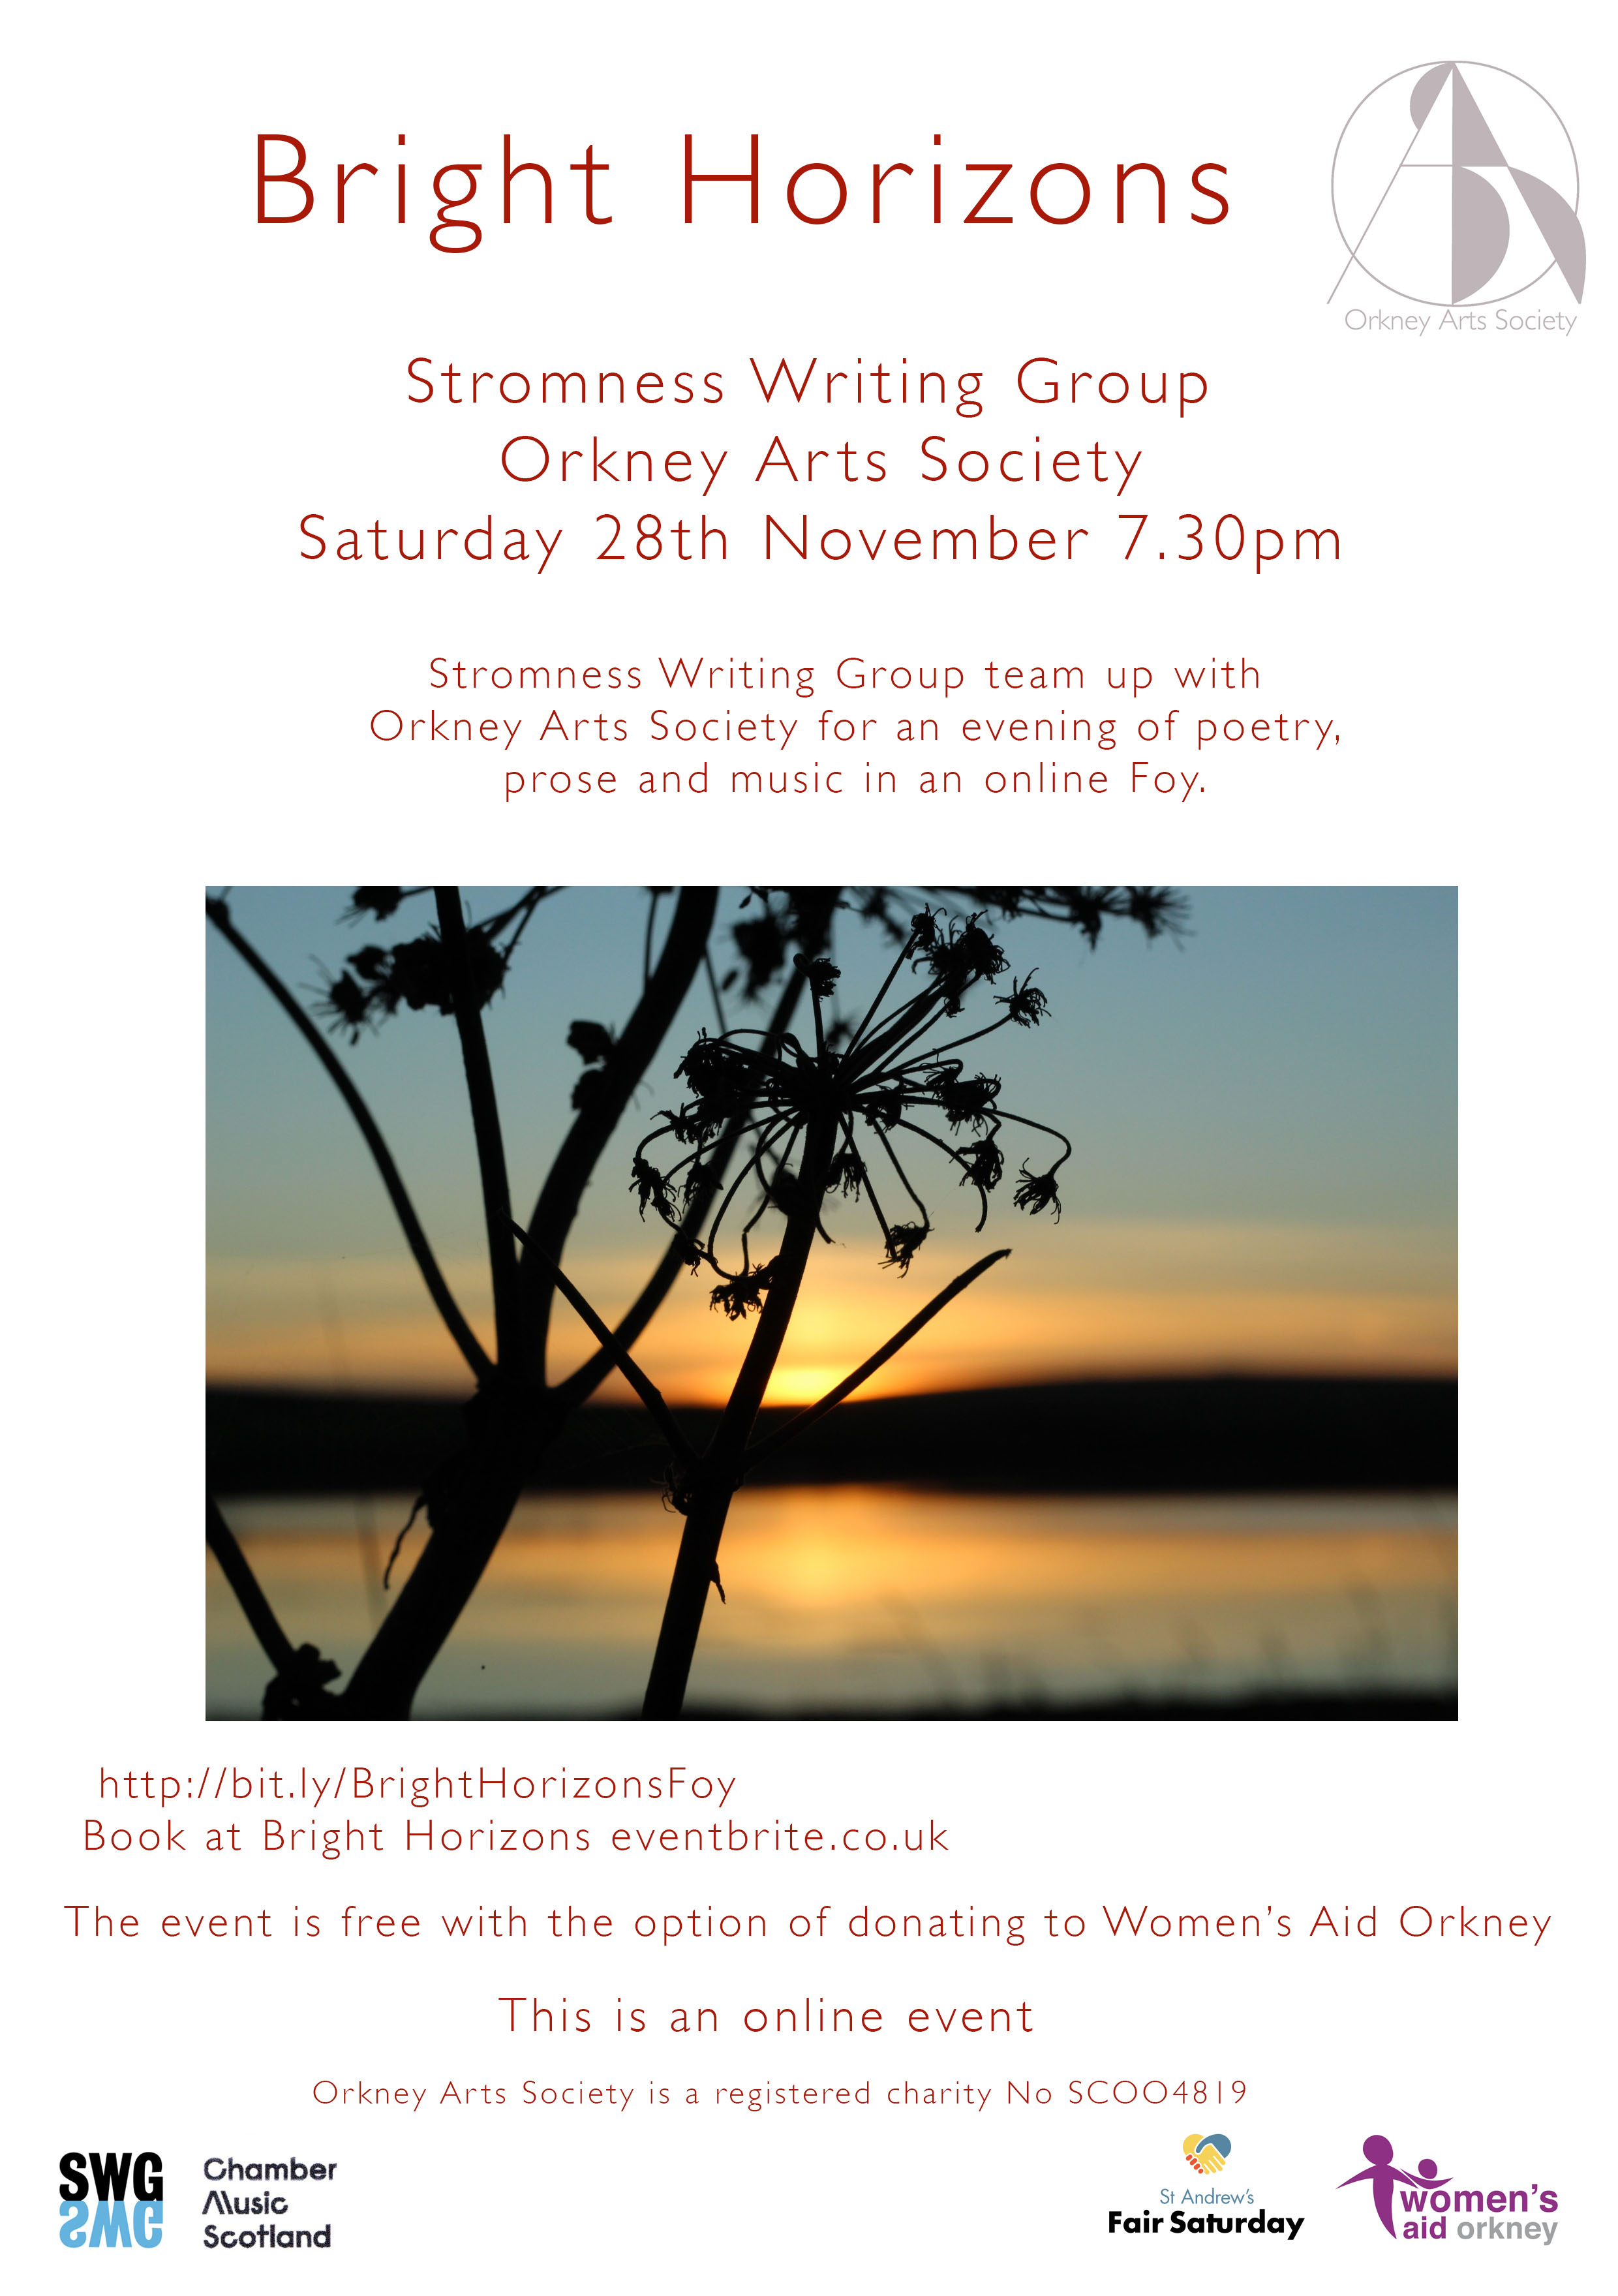 Bright Horizons Foy, poster, Orkney, writing, music, Orkney Arts Society, Stromness Writing Group event.